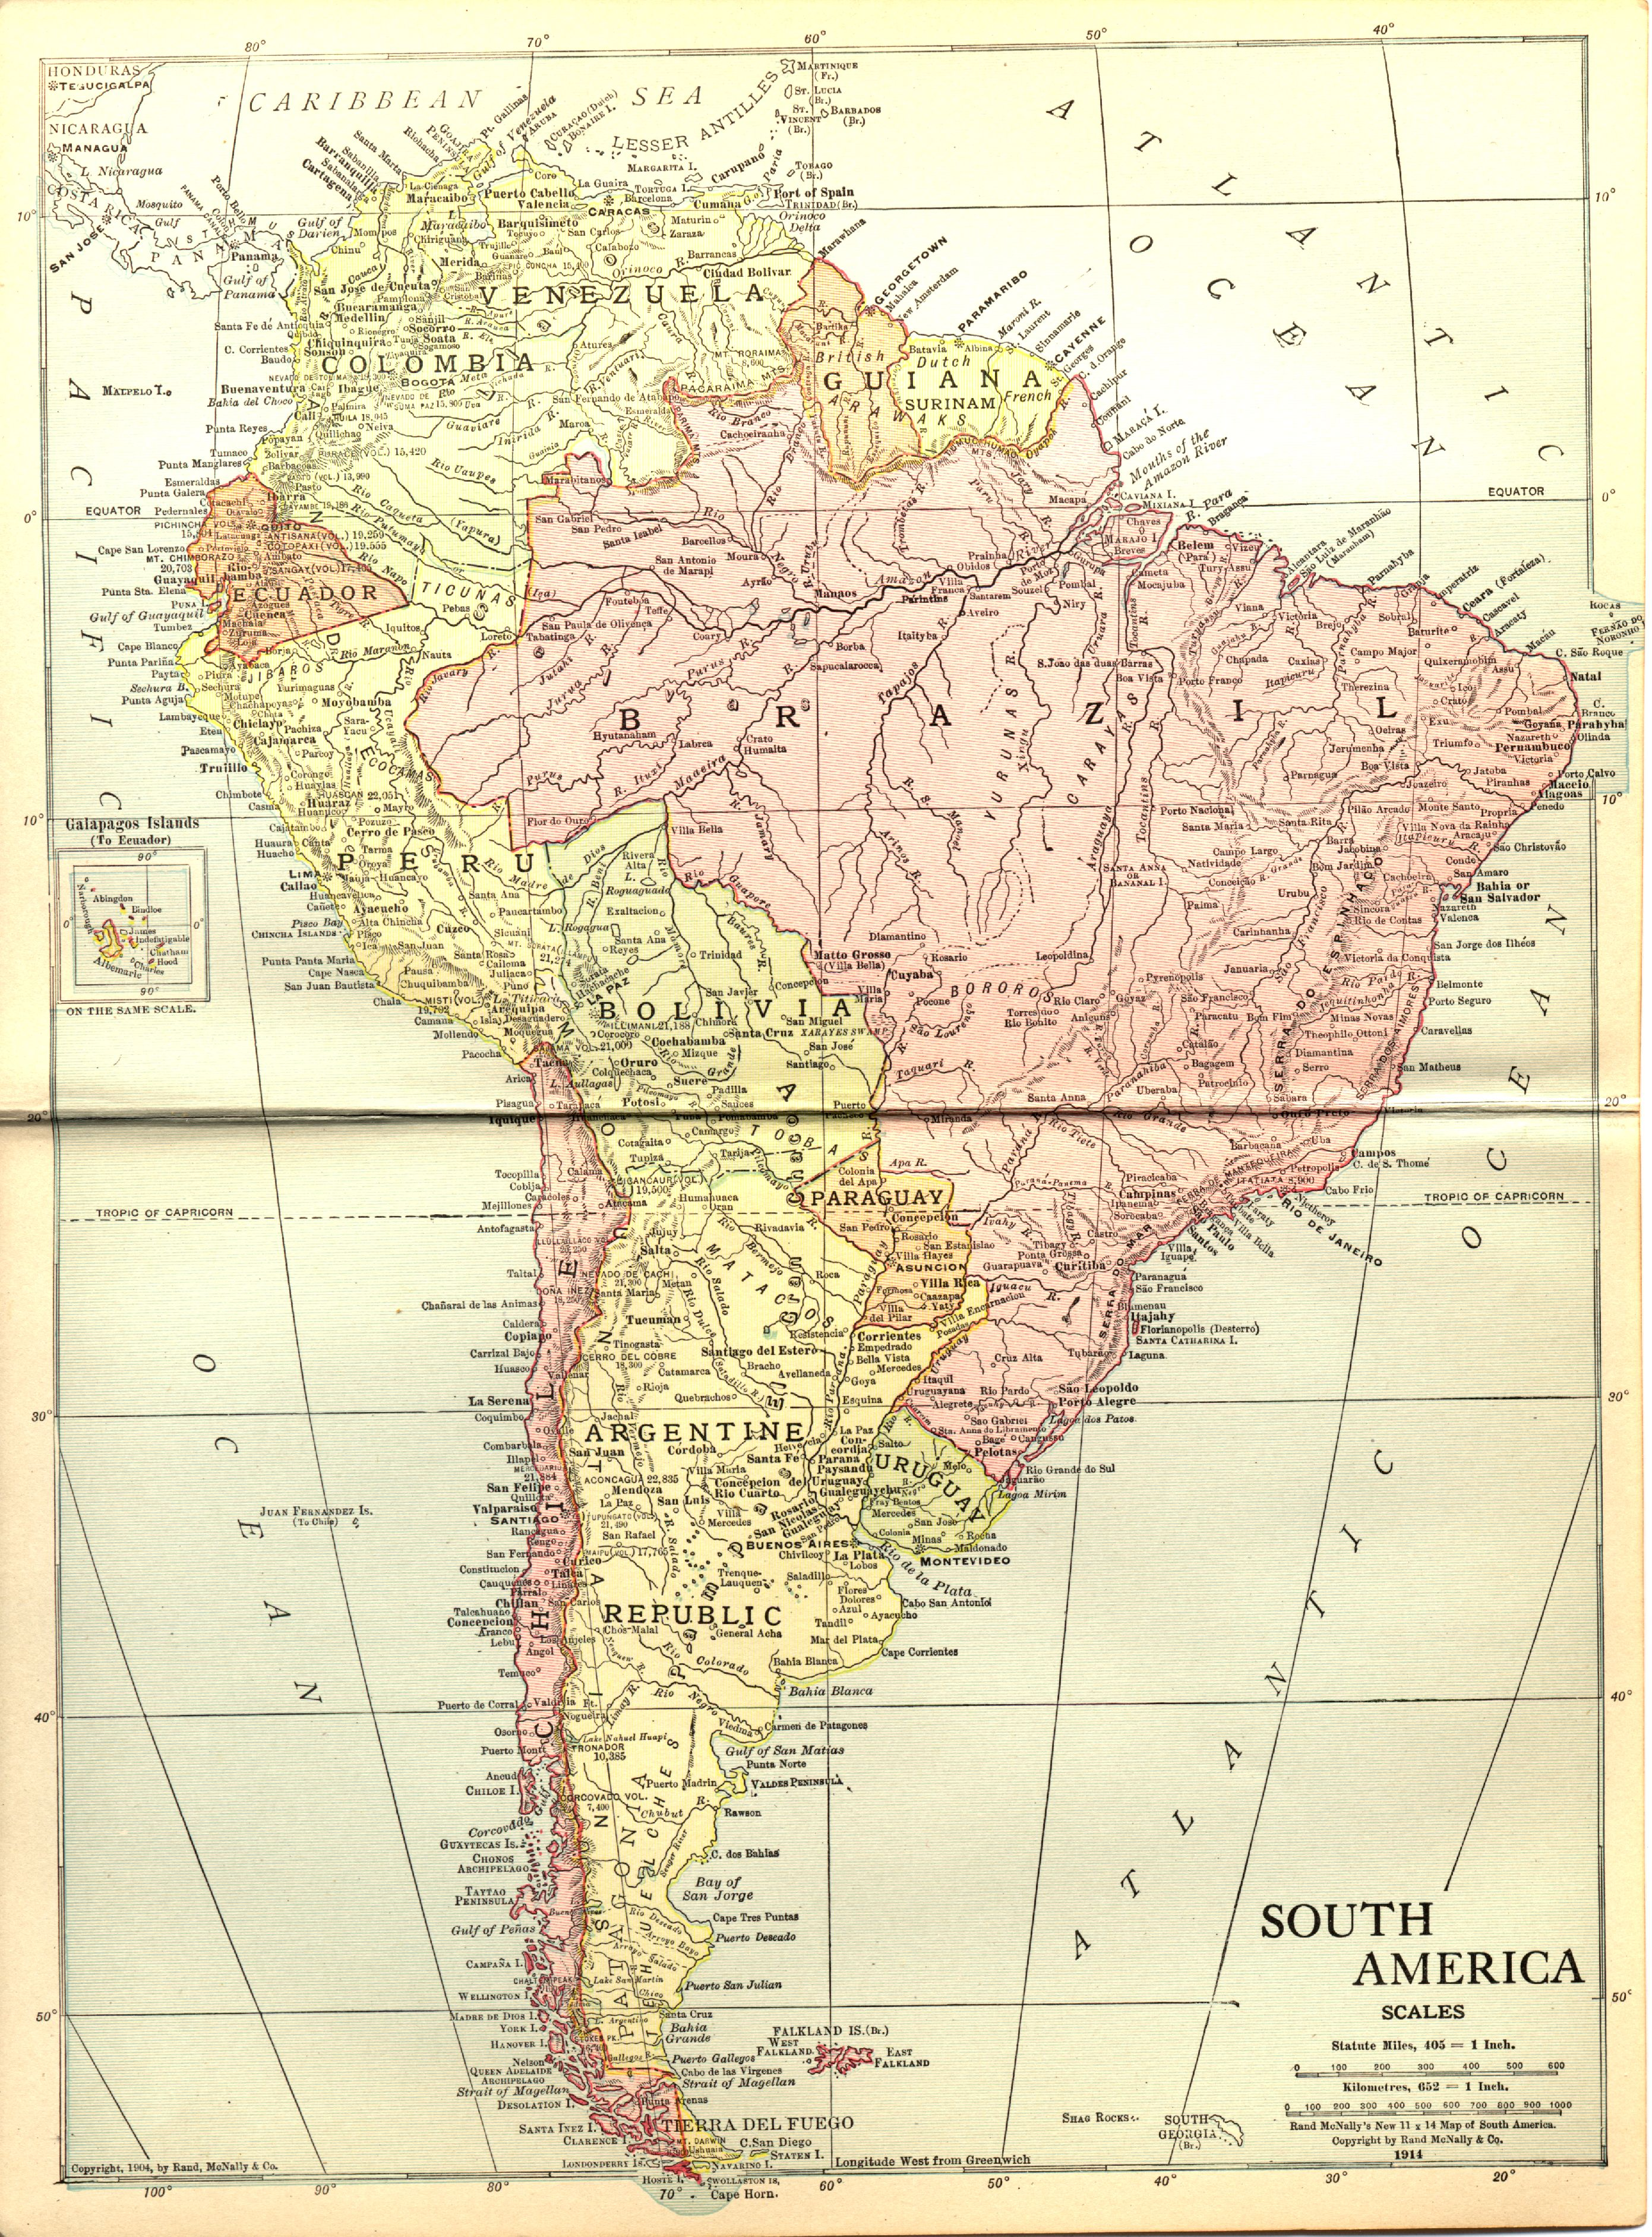 South America in 1914